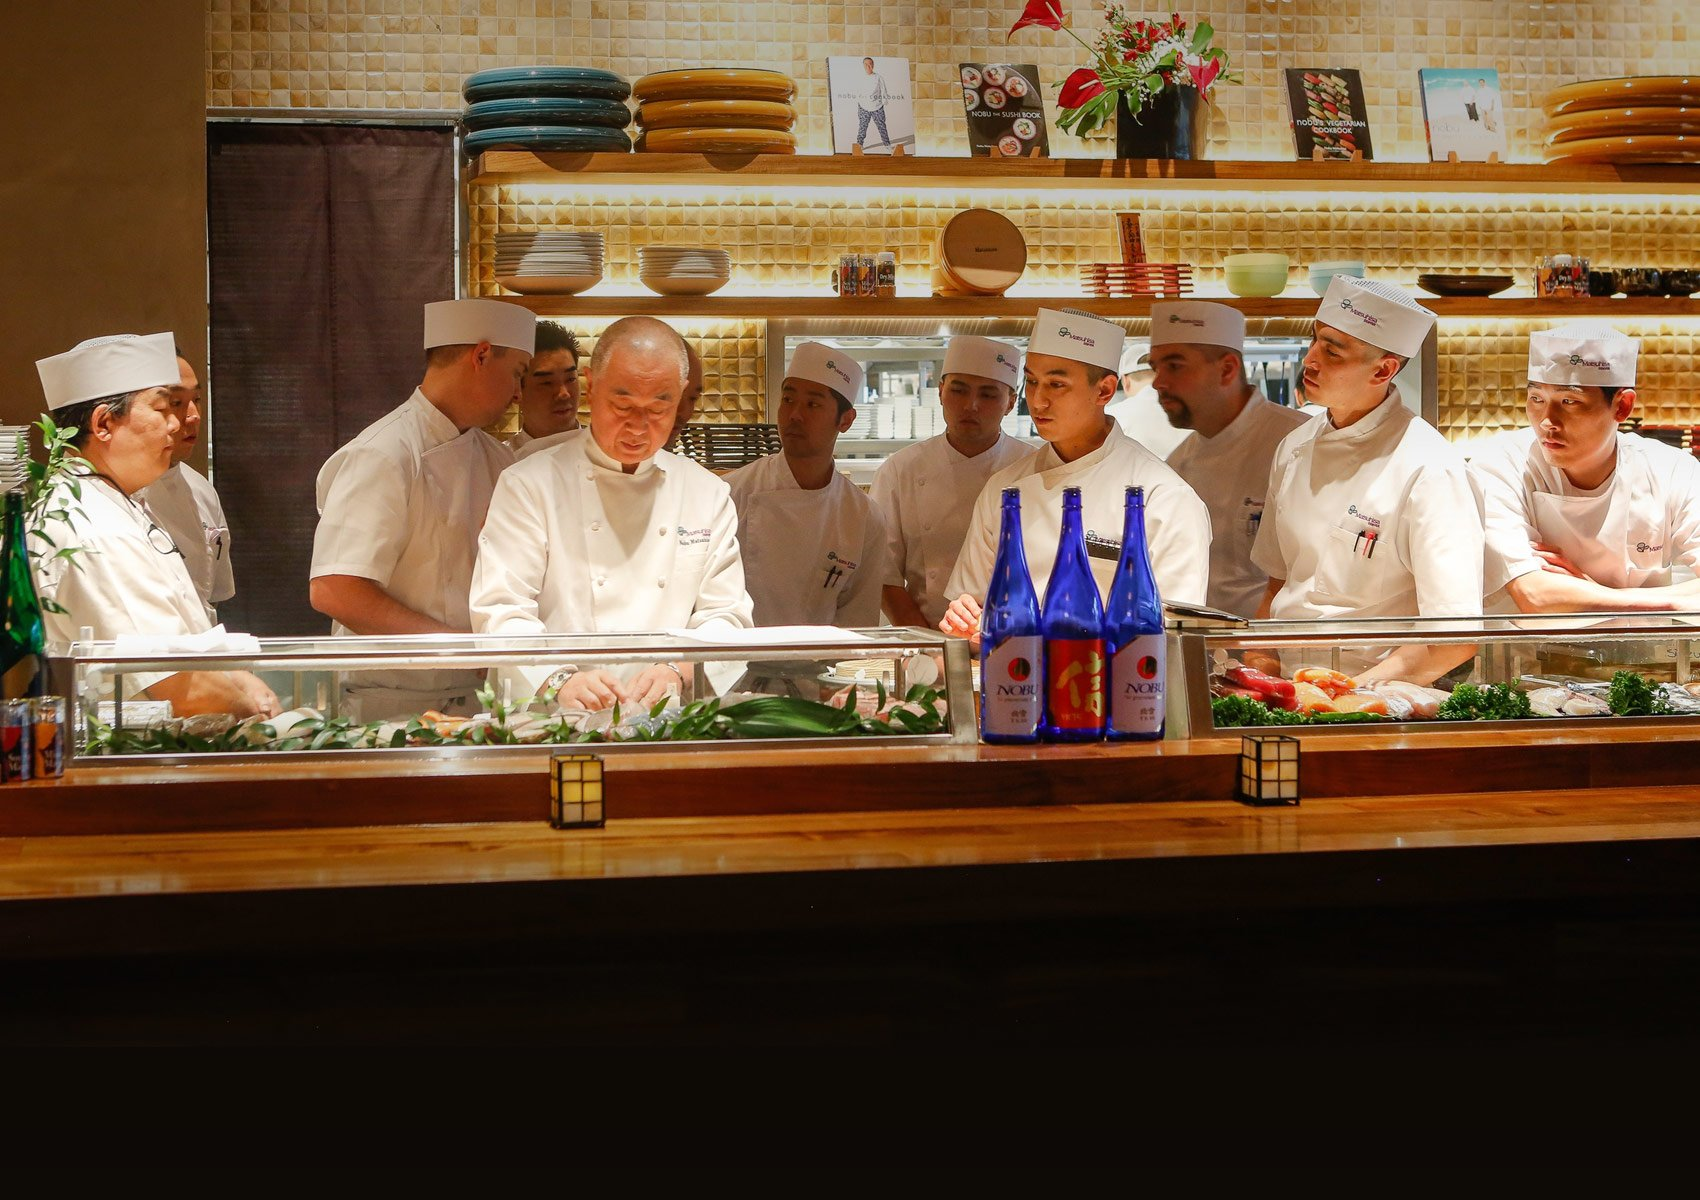 Chef Nobu Matsuhisa and his team